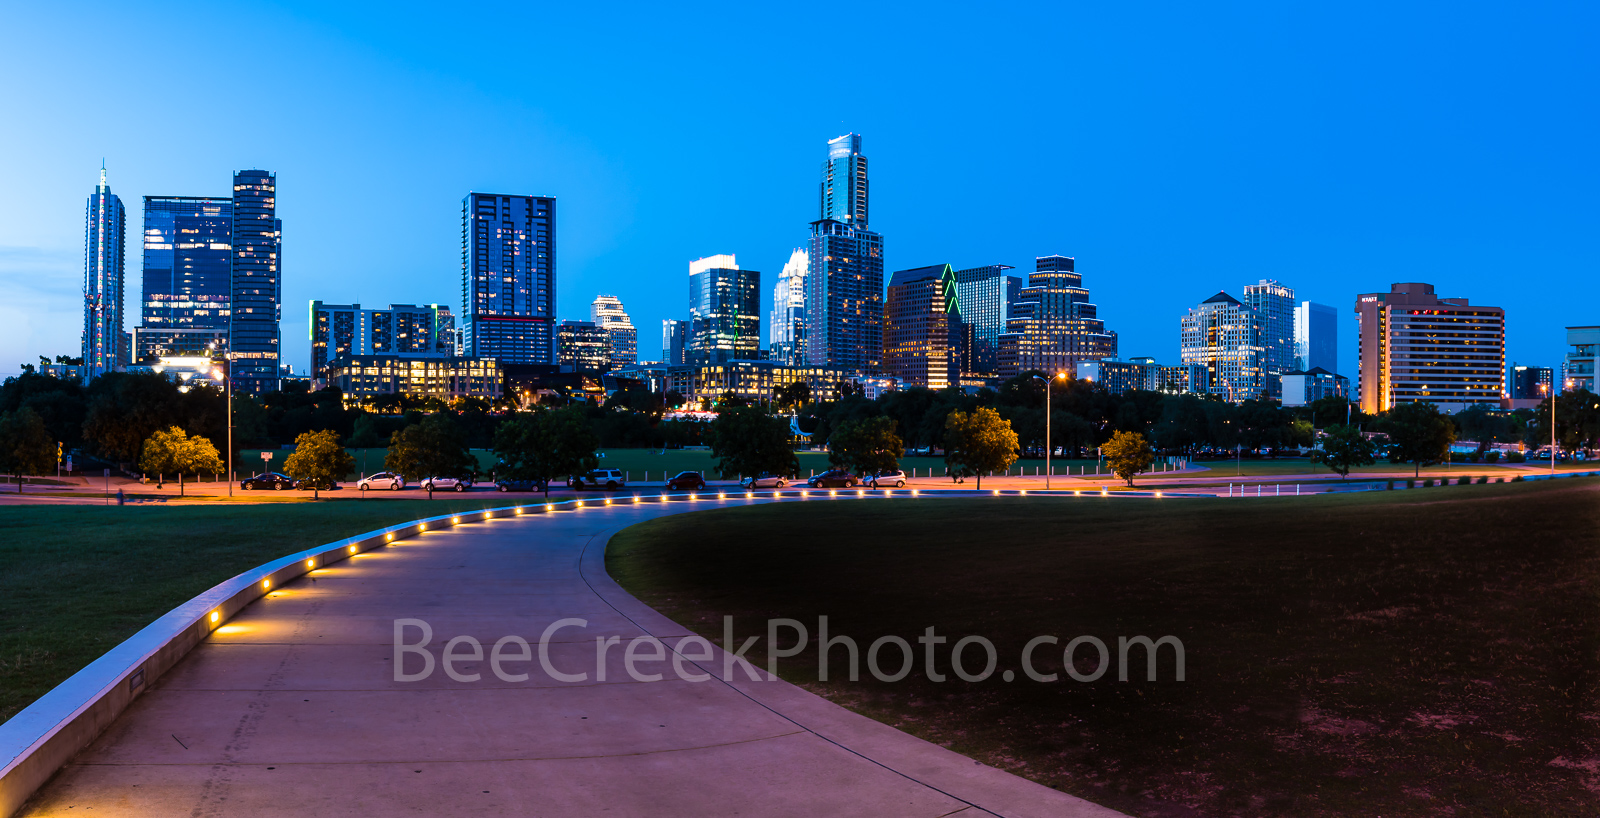 Austin Skyline, Path to Austin Skyline Pano, blue light, night, downtown, cityscape, path, lights, walkway, high rise, skycrapers, Long Center, Lady Bird Lake, Frost, Austonian, pano, panorama, Indepe, photo